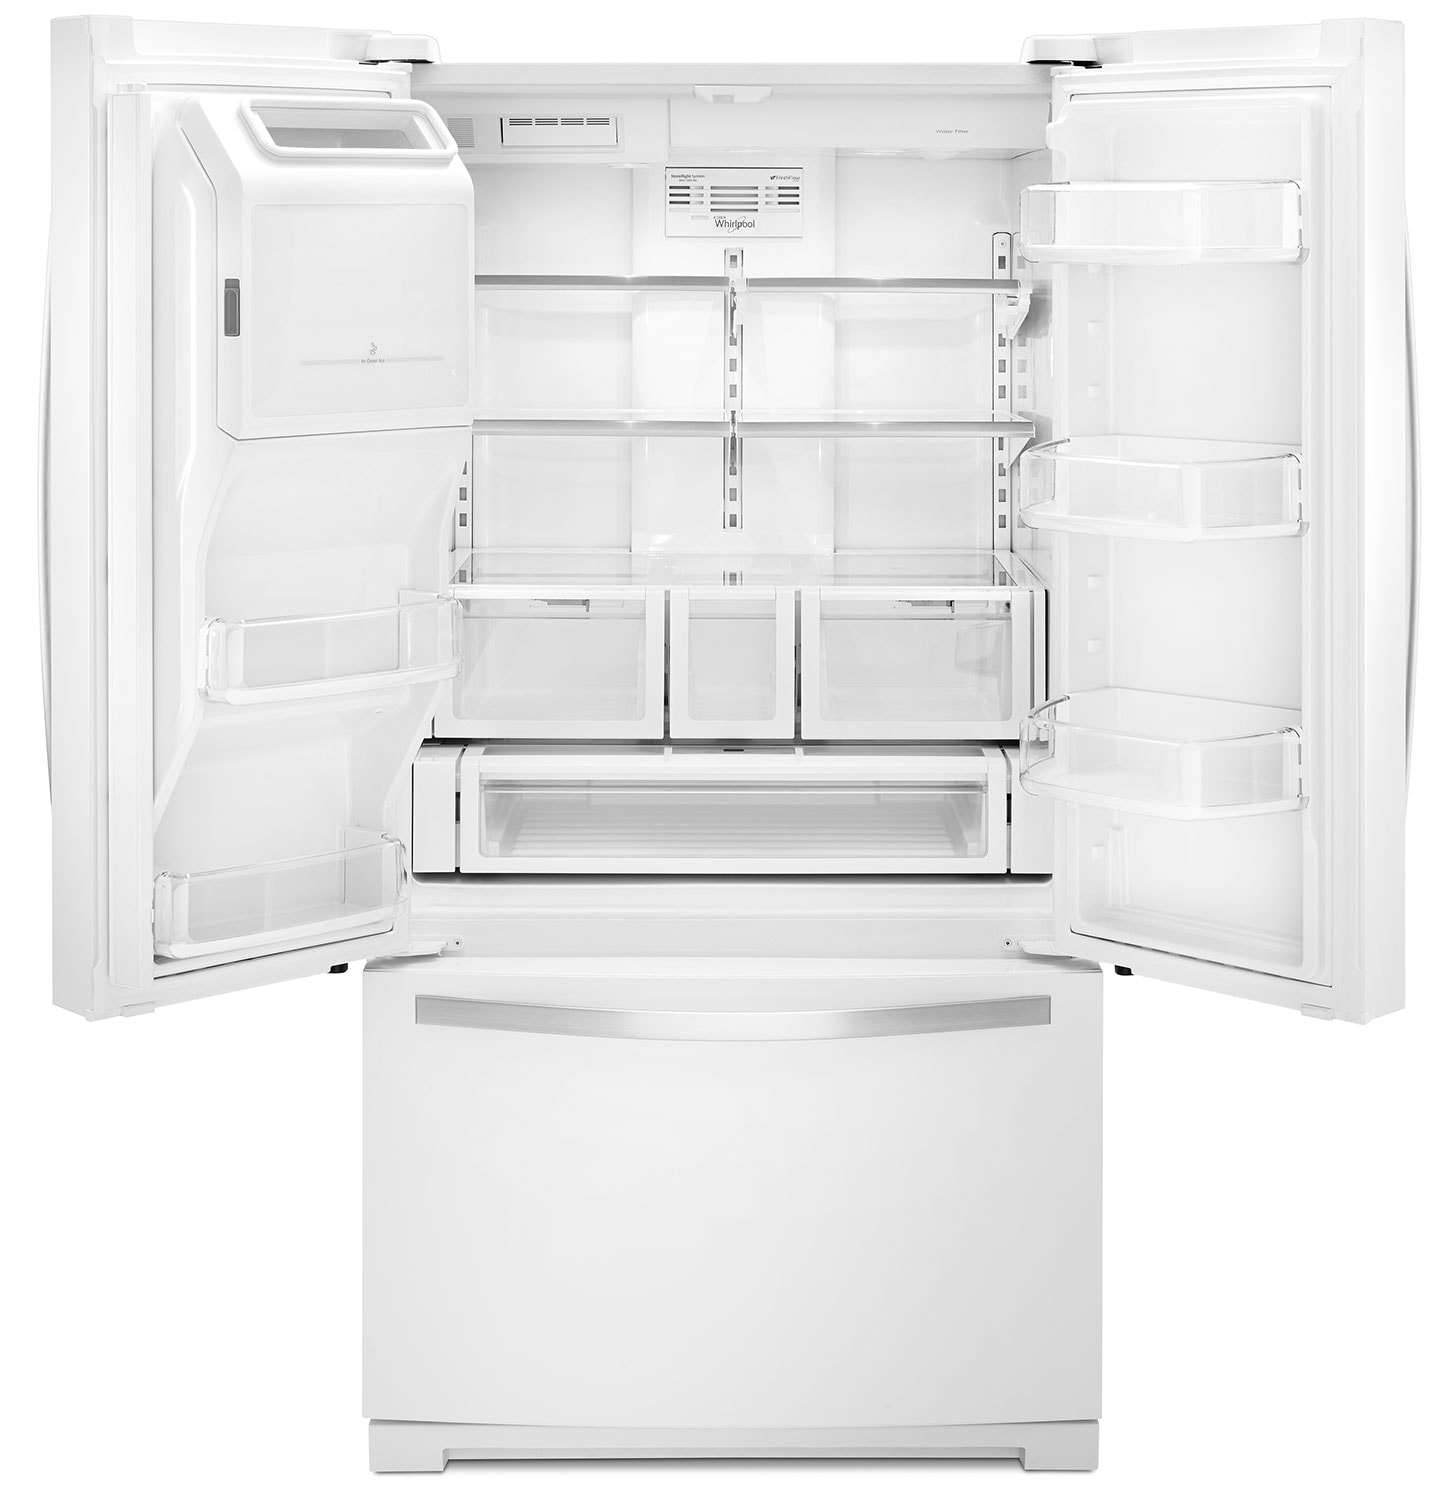 Whirlpool White French Door Refrigerator (26.8 Cu. Ft.)   WRF757SDEH